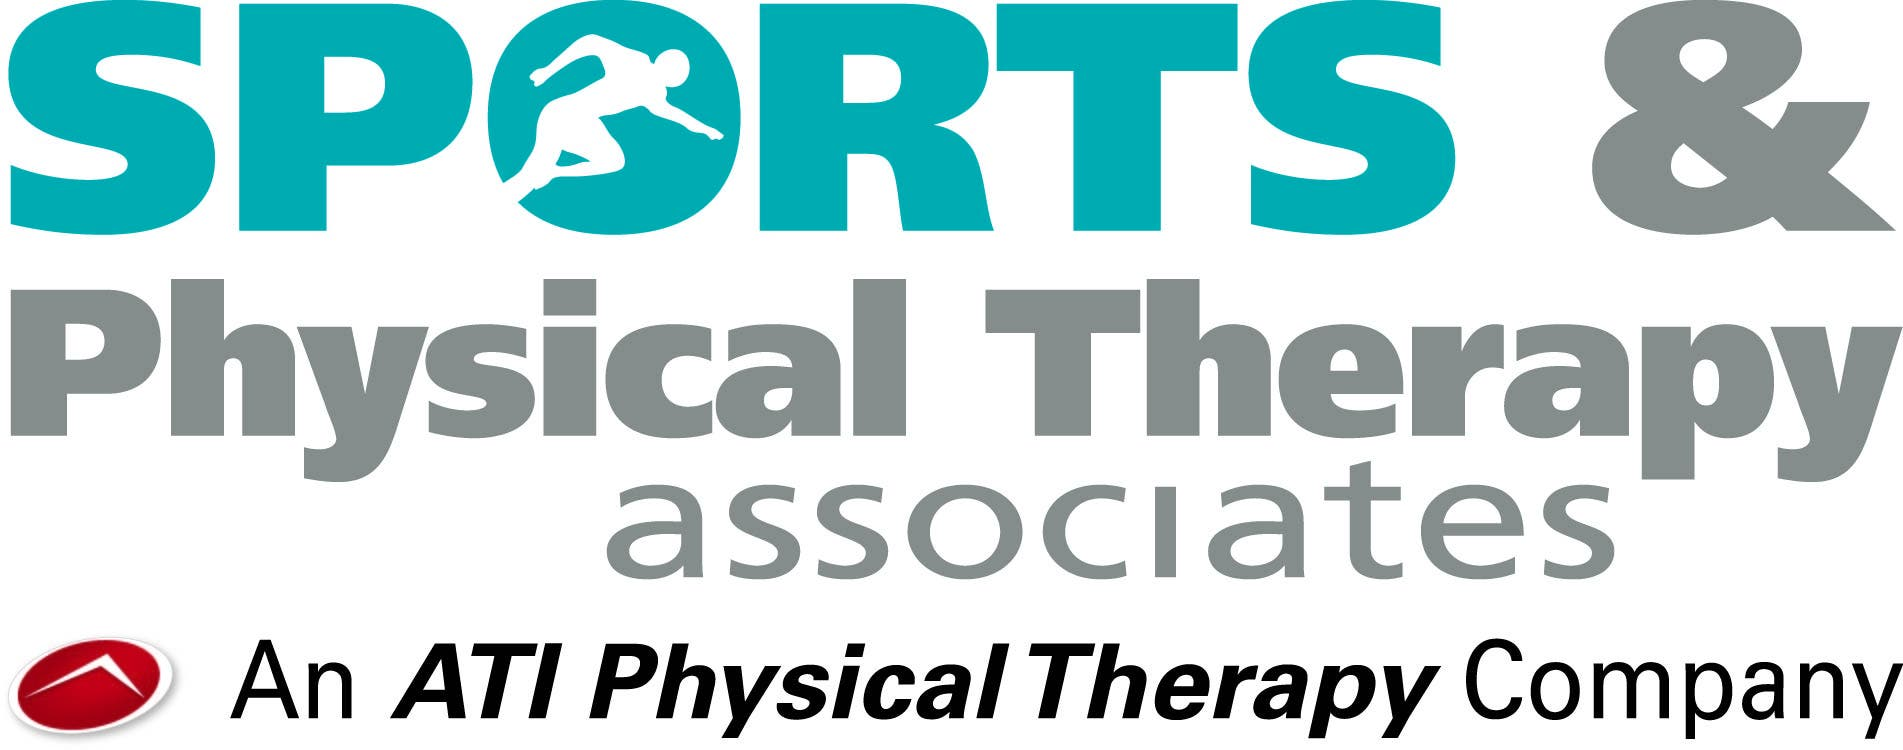 Sports & Physical Therapy Associates Joins ATI Physical